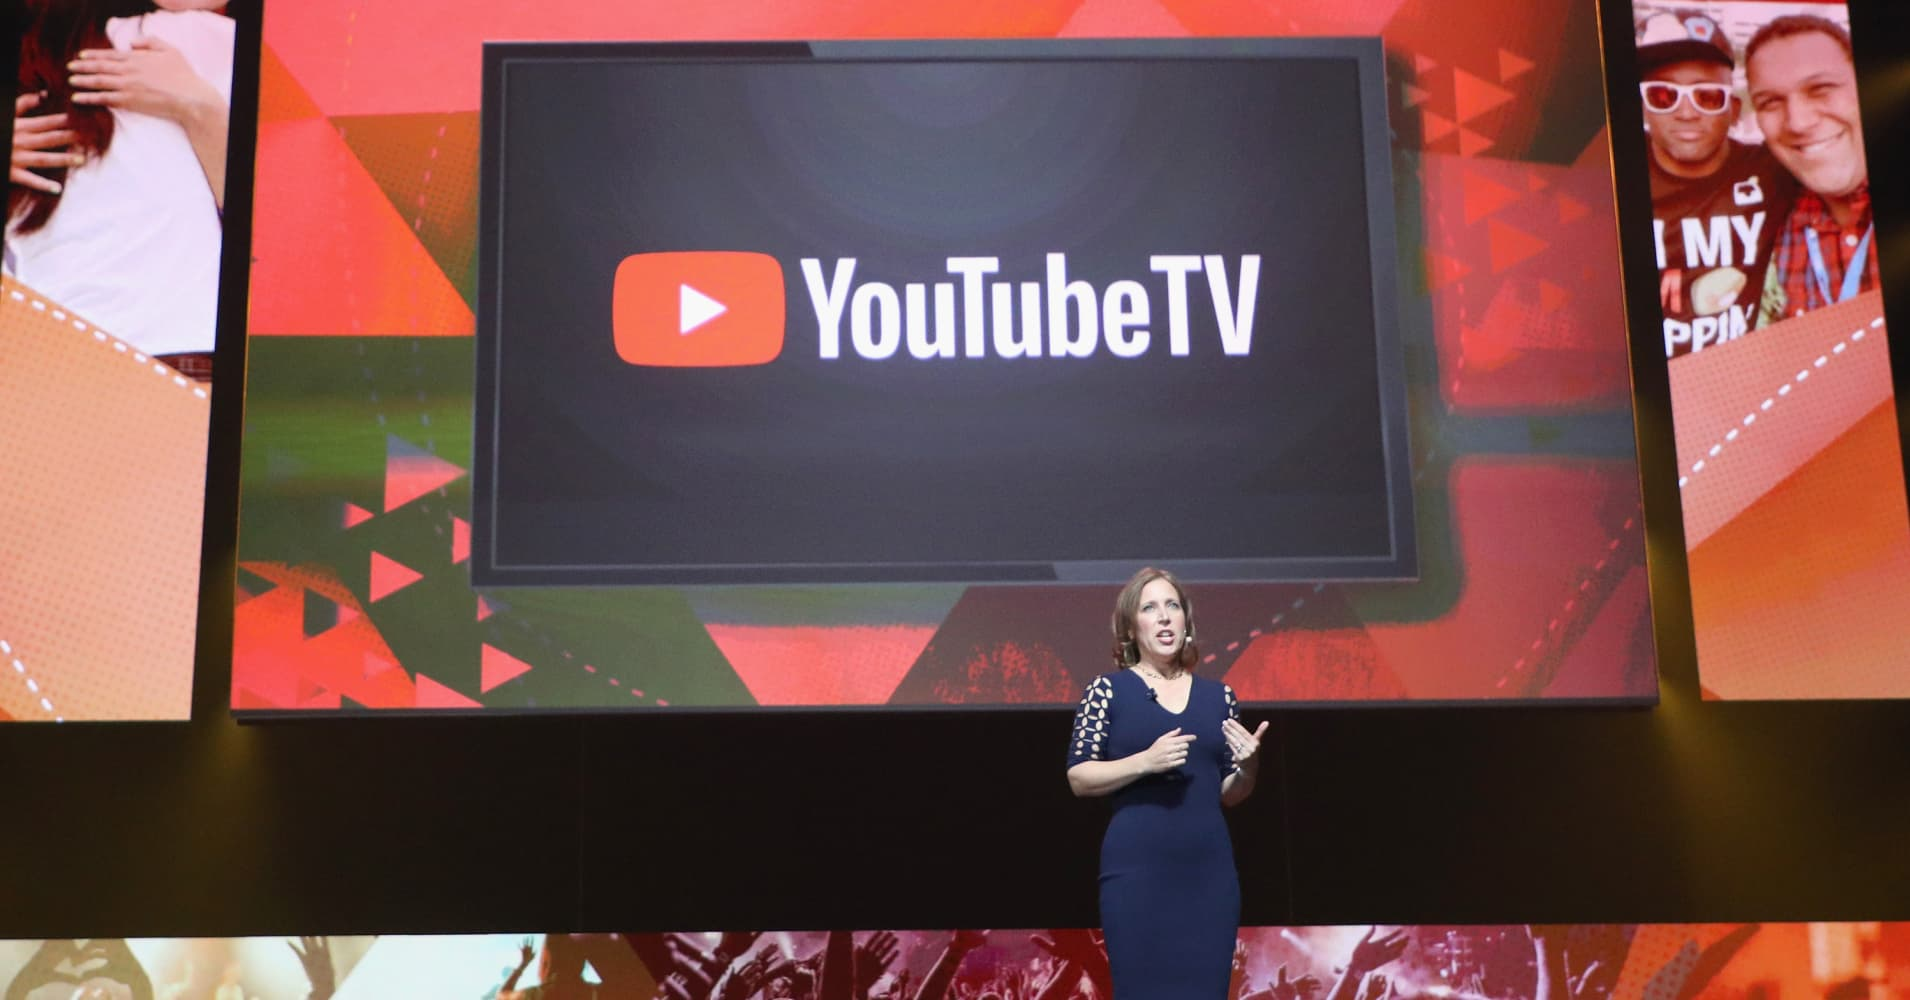 YouTube removed 1.6 million channels last quarter, mostly for being spam or scams